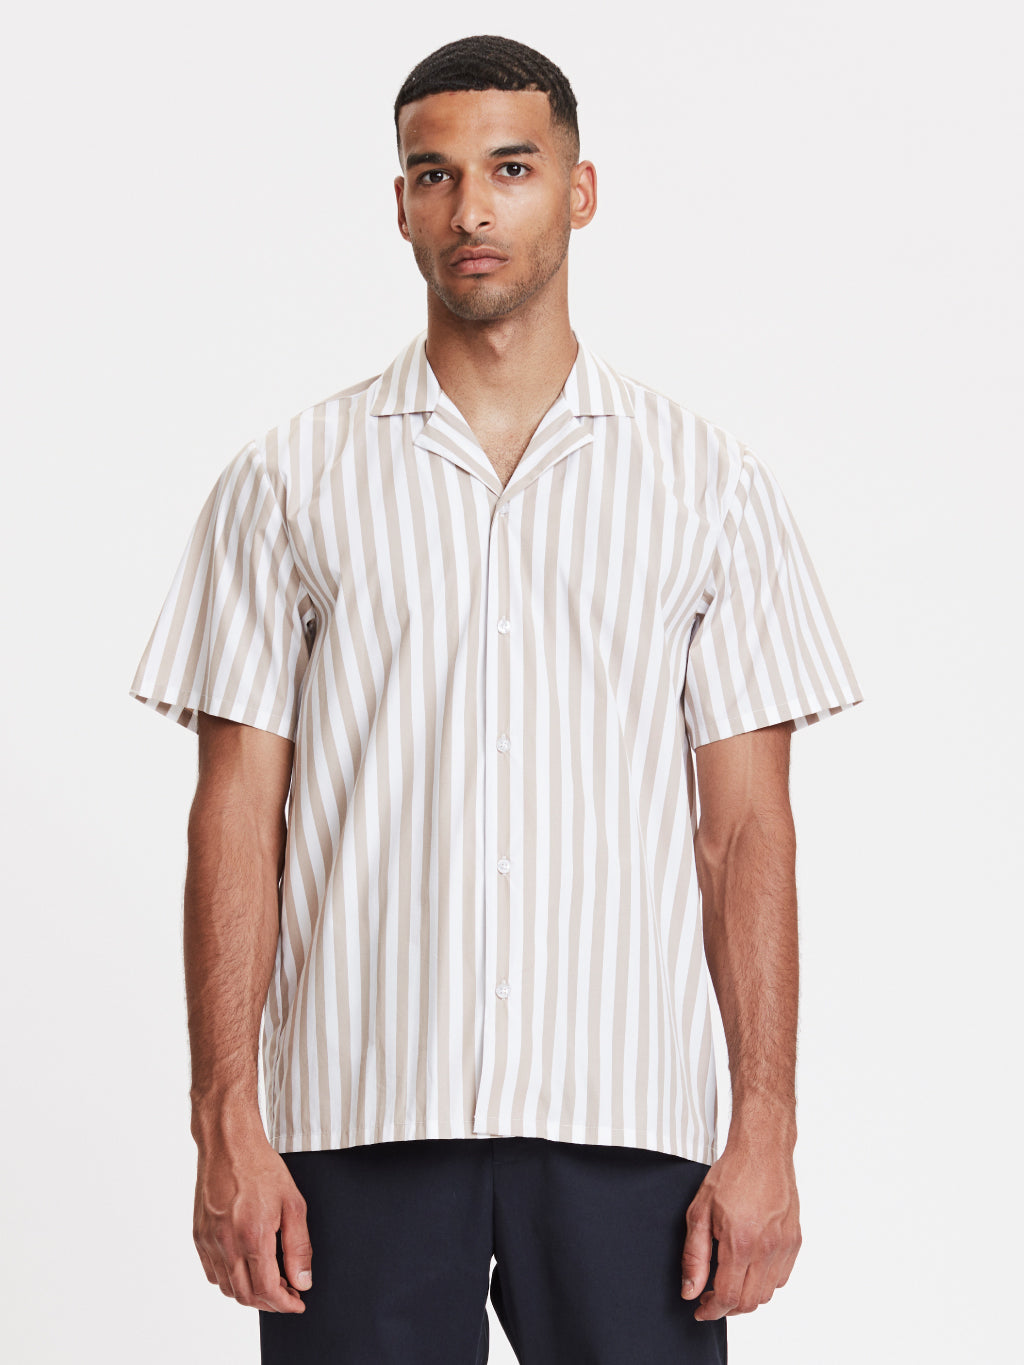 Clark Shirt | Sand Striped